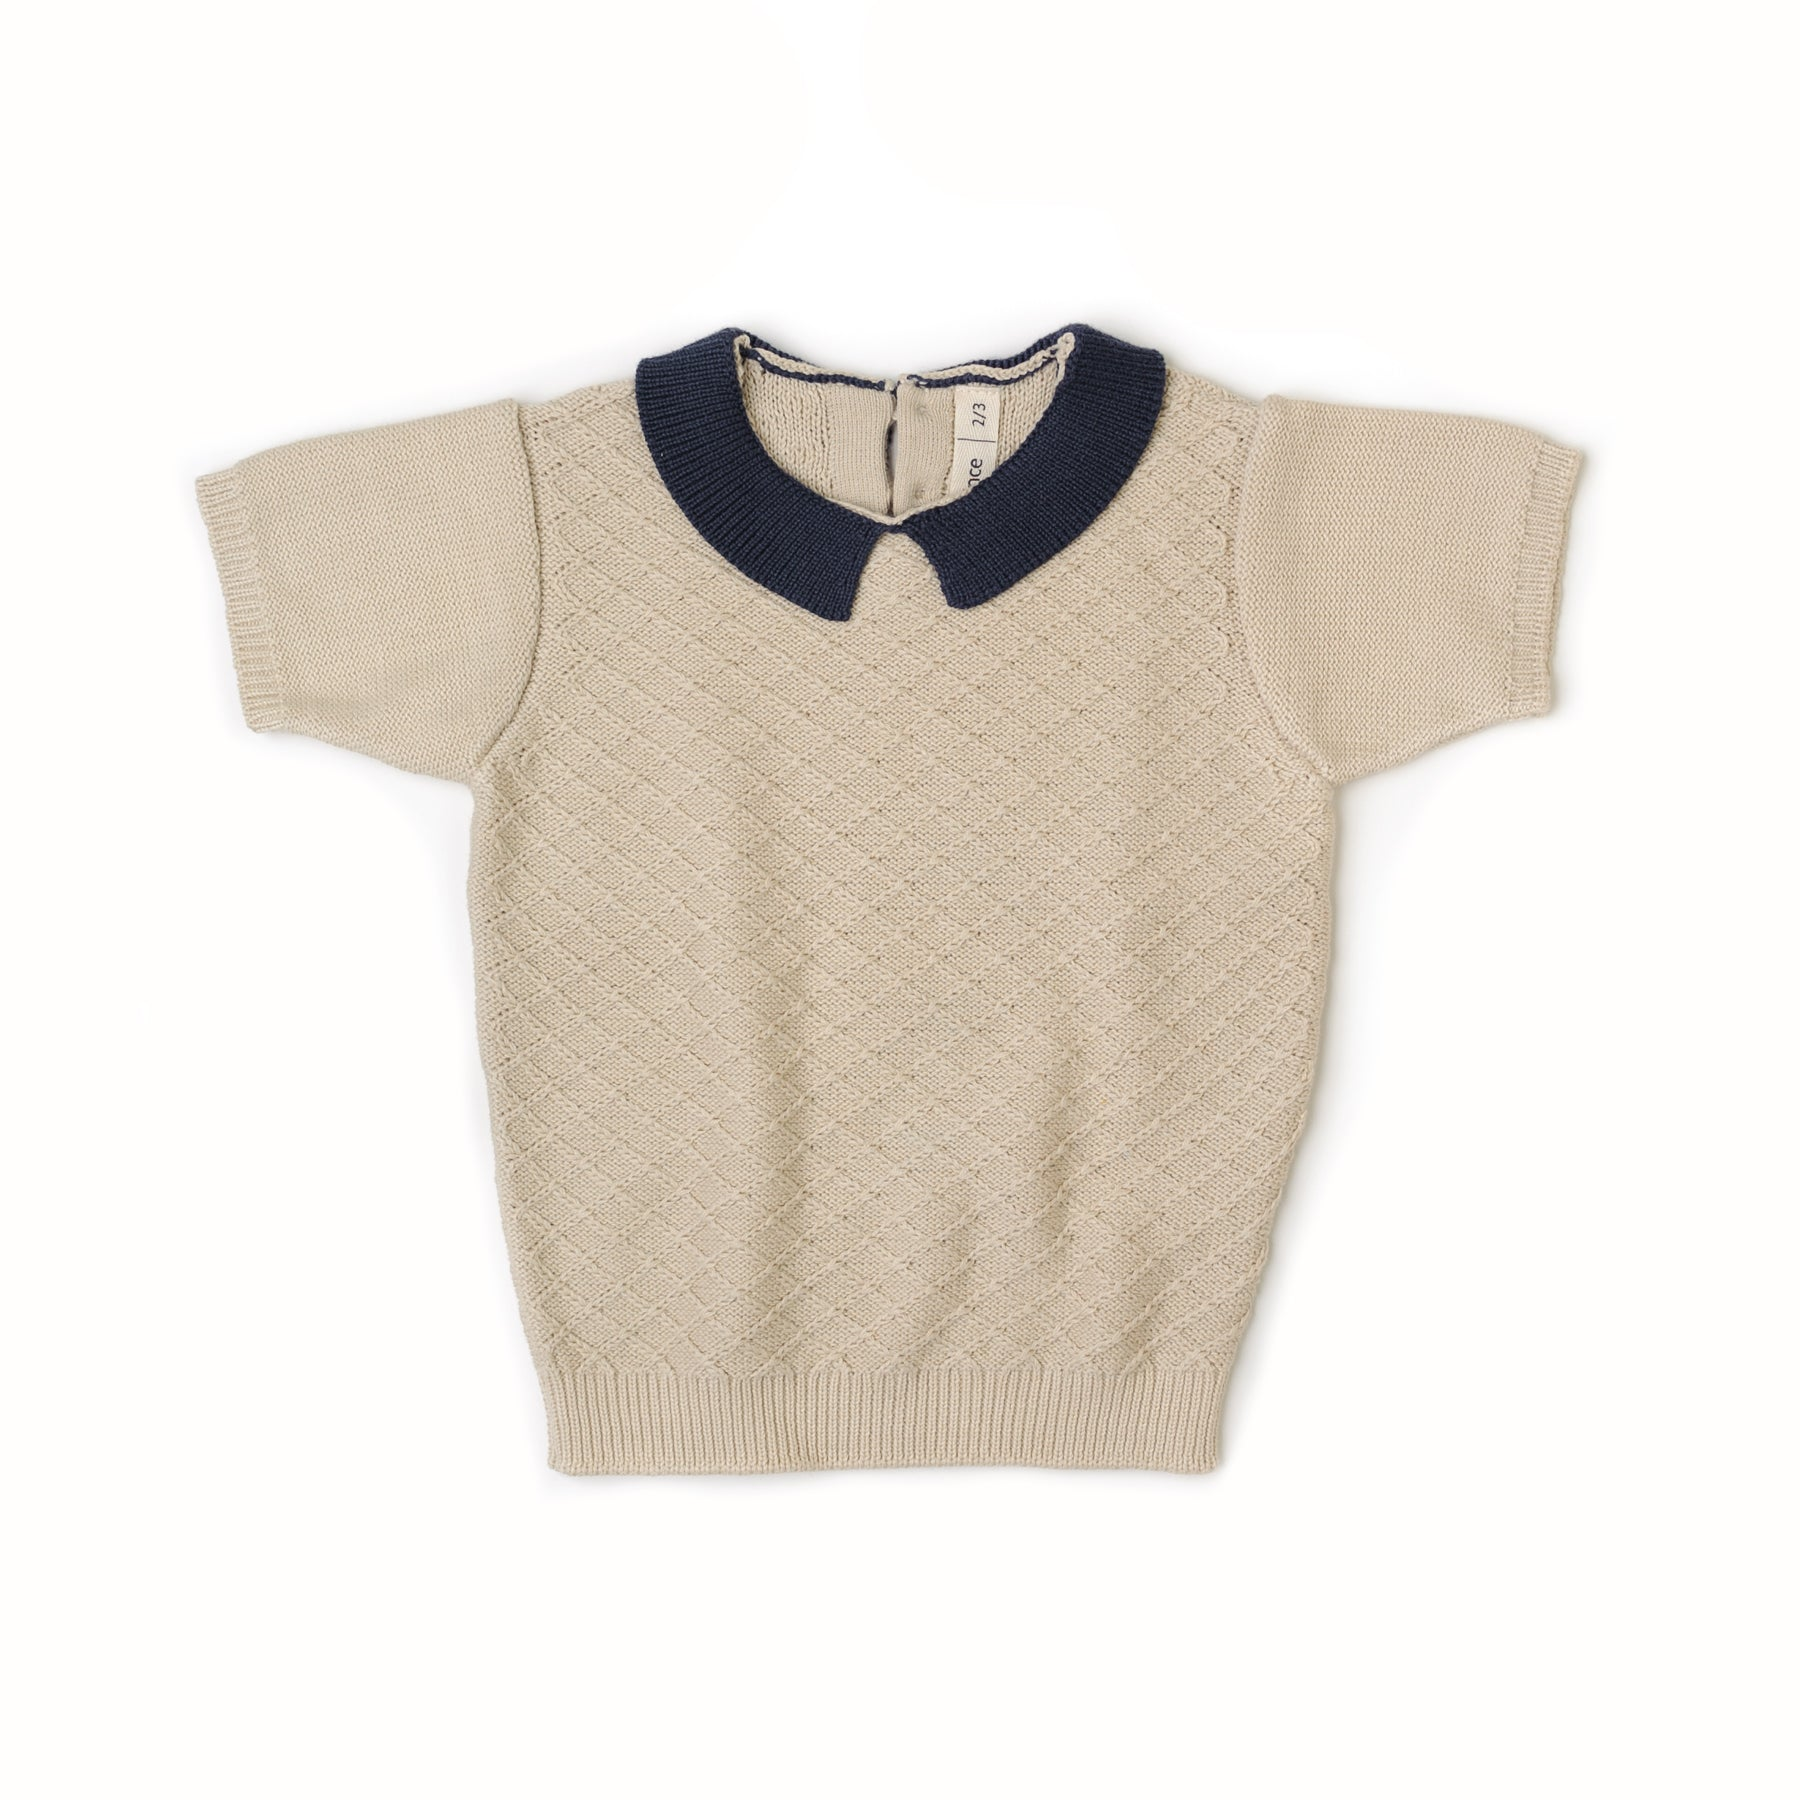 Fin and Vince - Knit Collar Top (Night Blue)